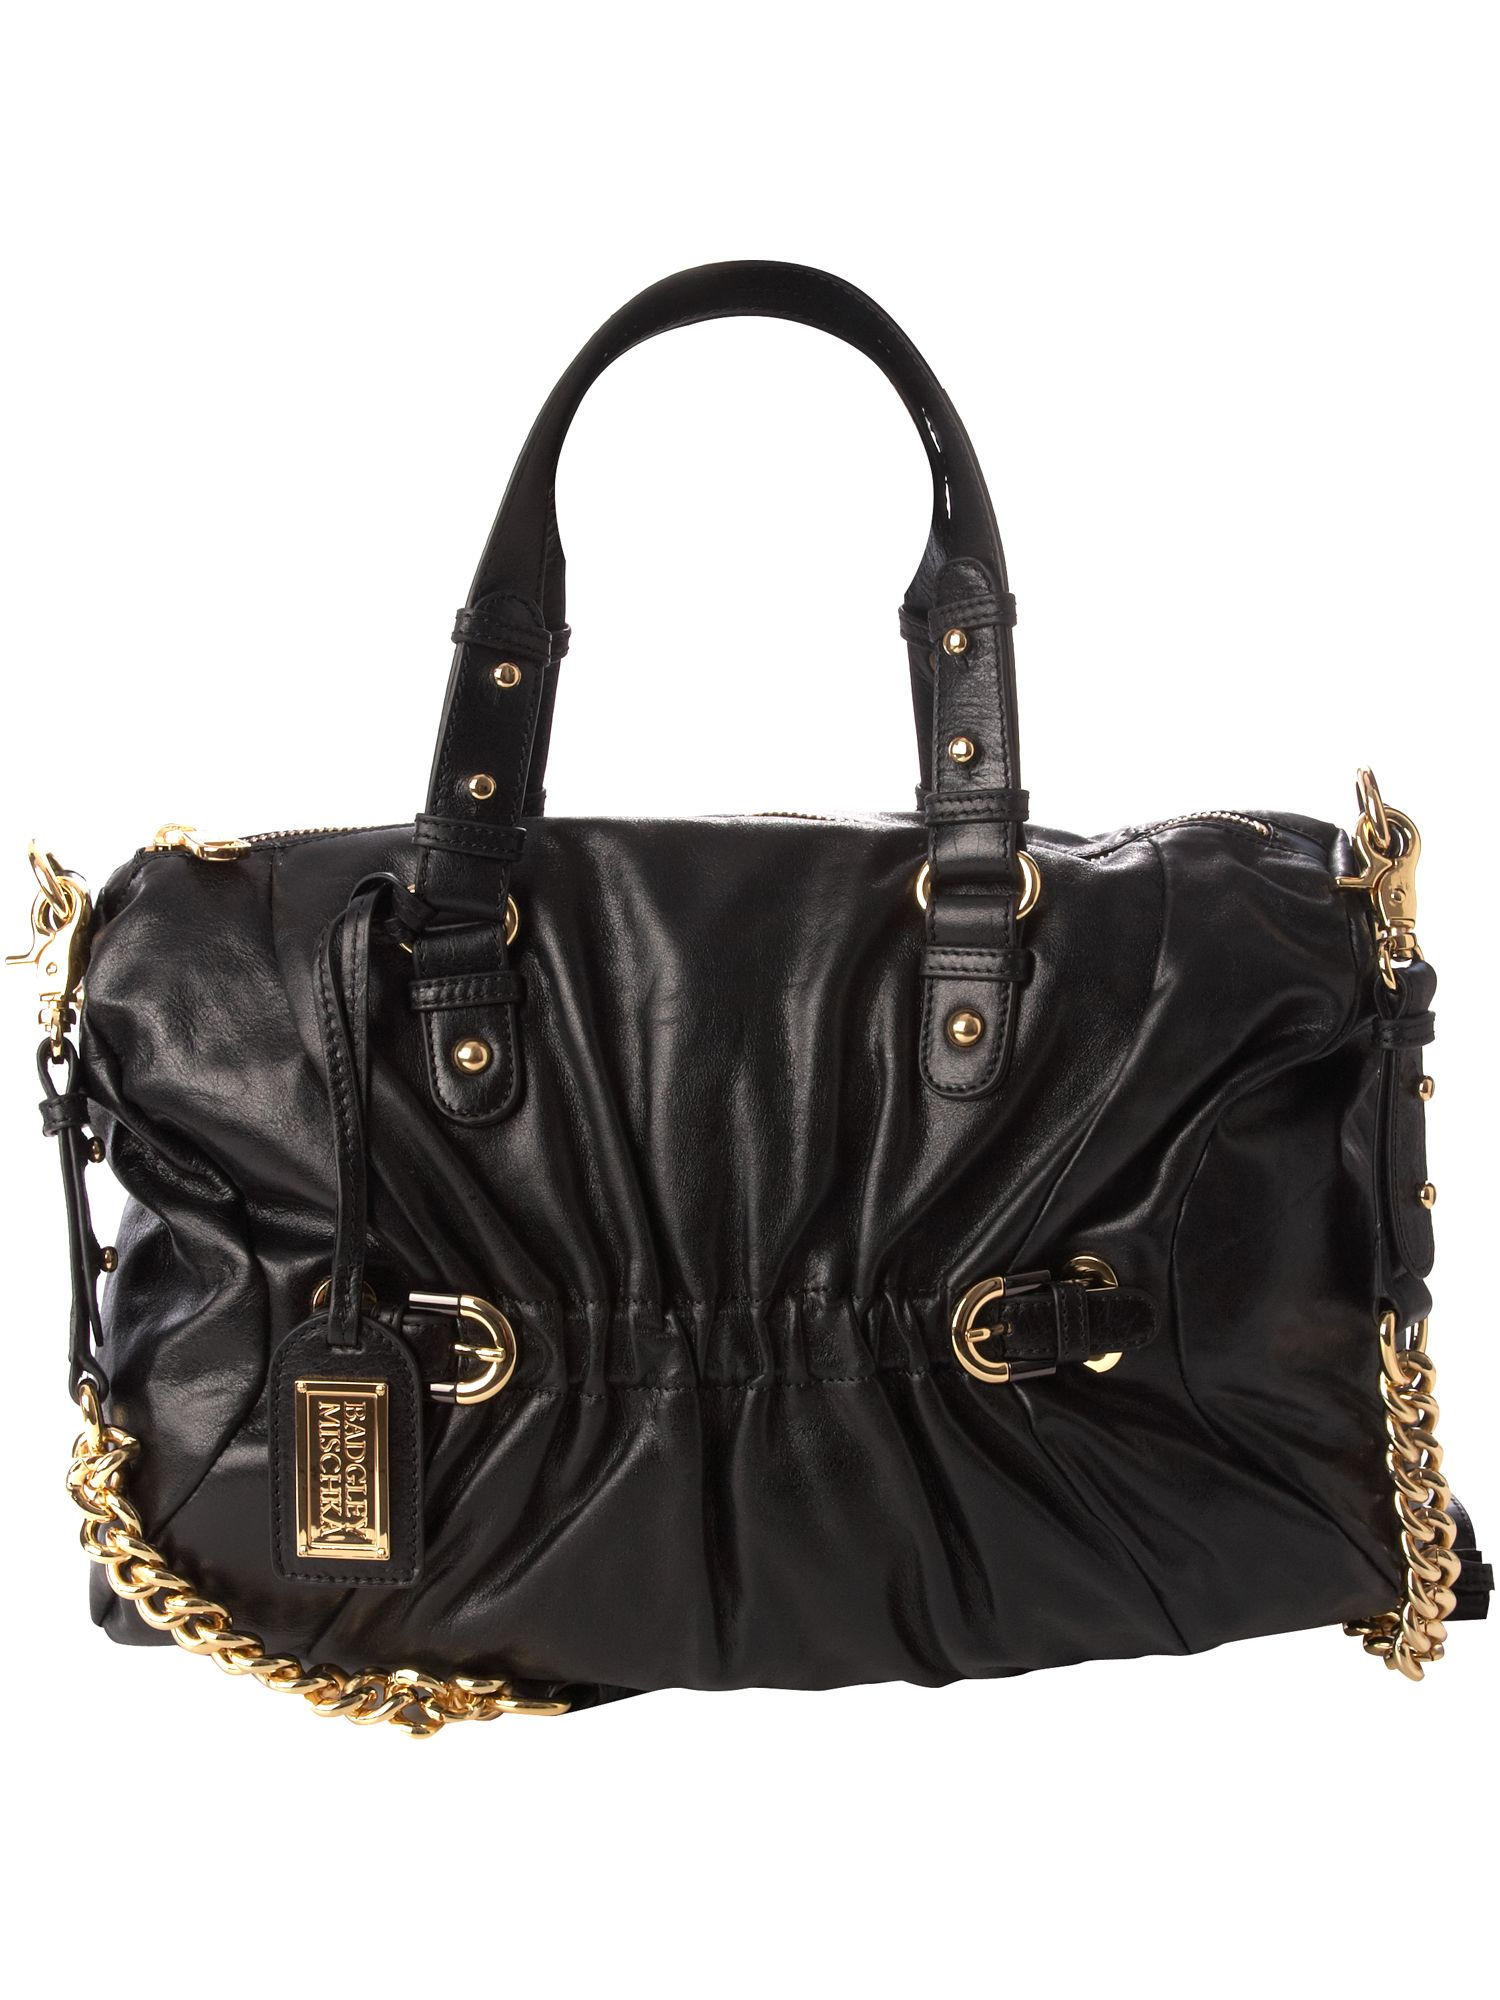 Badgley Mischka Arlette large leather bowling bag. product image